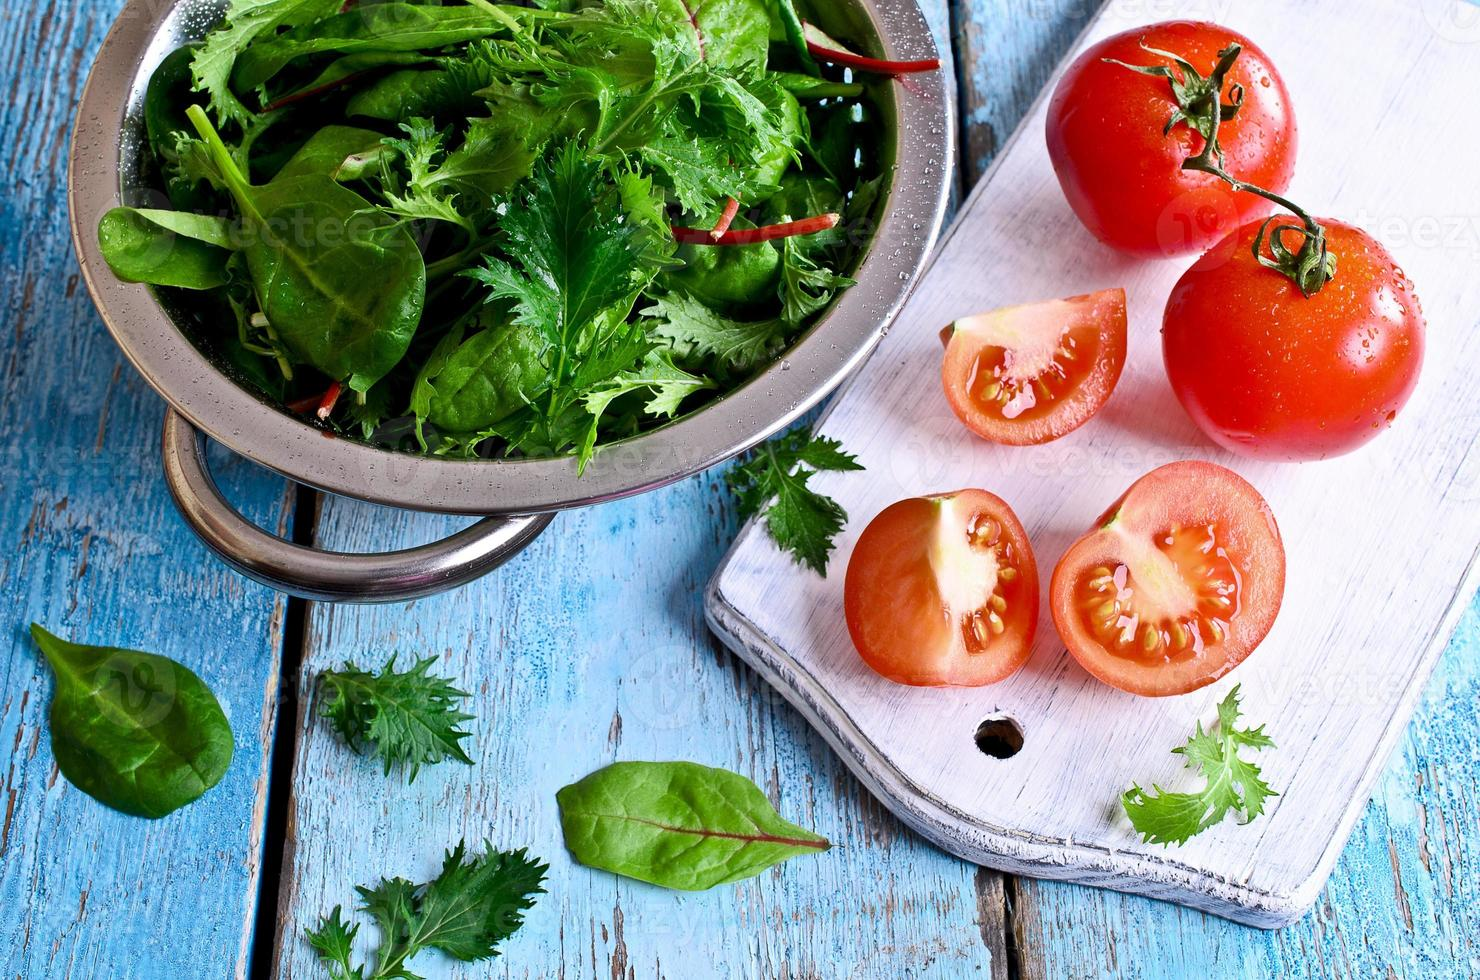 Tomatoes and green lettuce photo